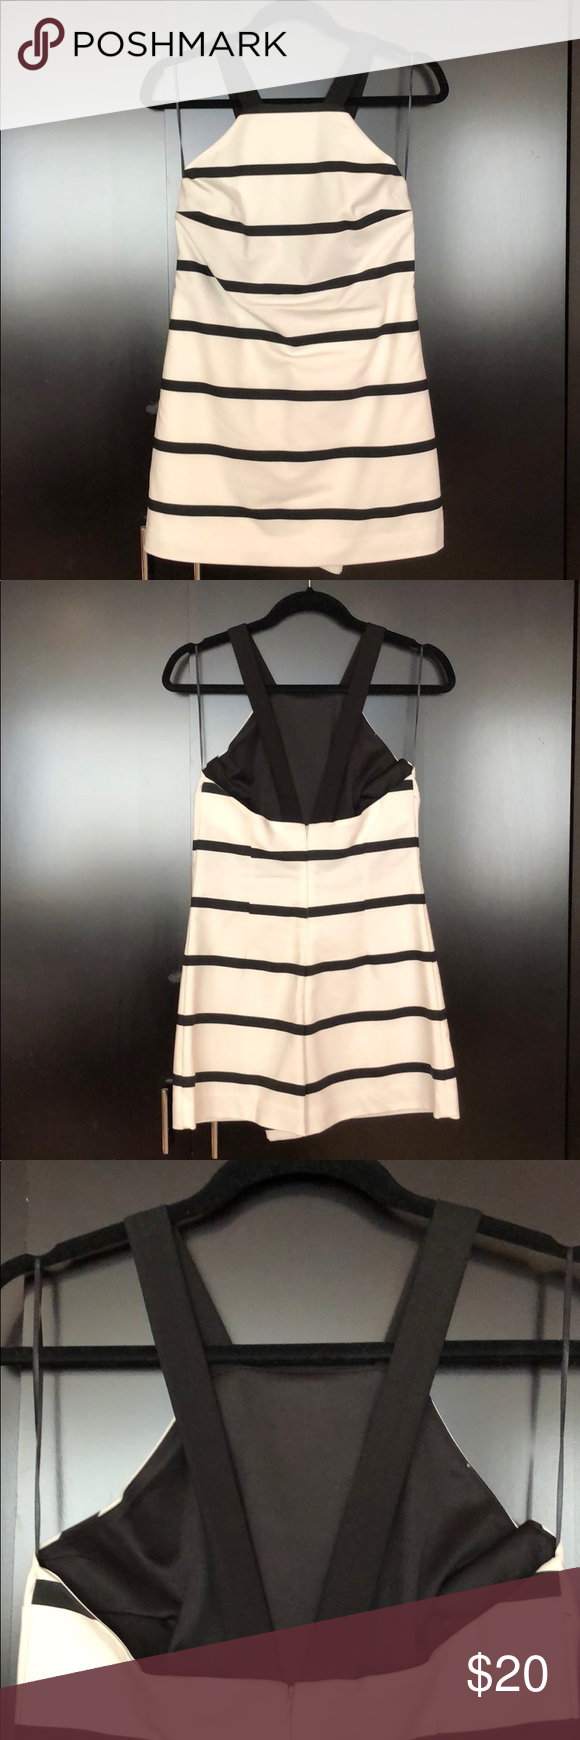 04f3c20940fb Zara striped romper Zara striped romper Like new. Worn once Size M Zara  Other